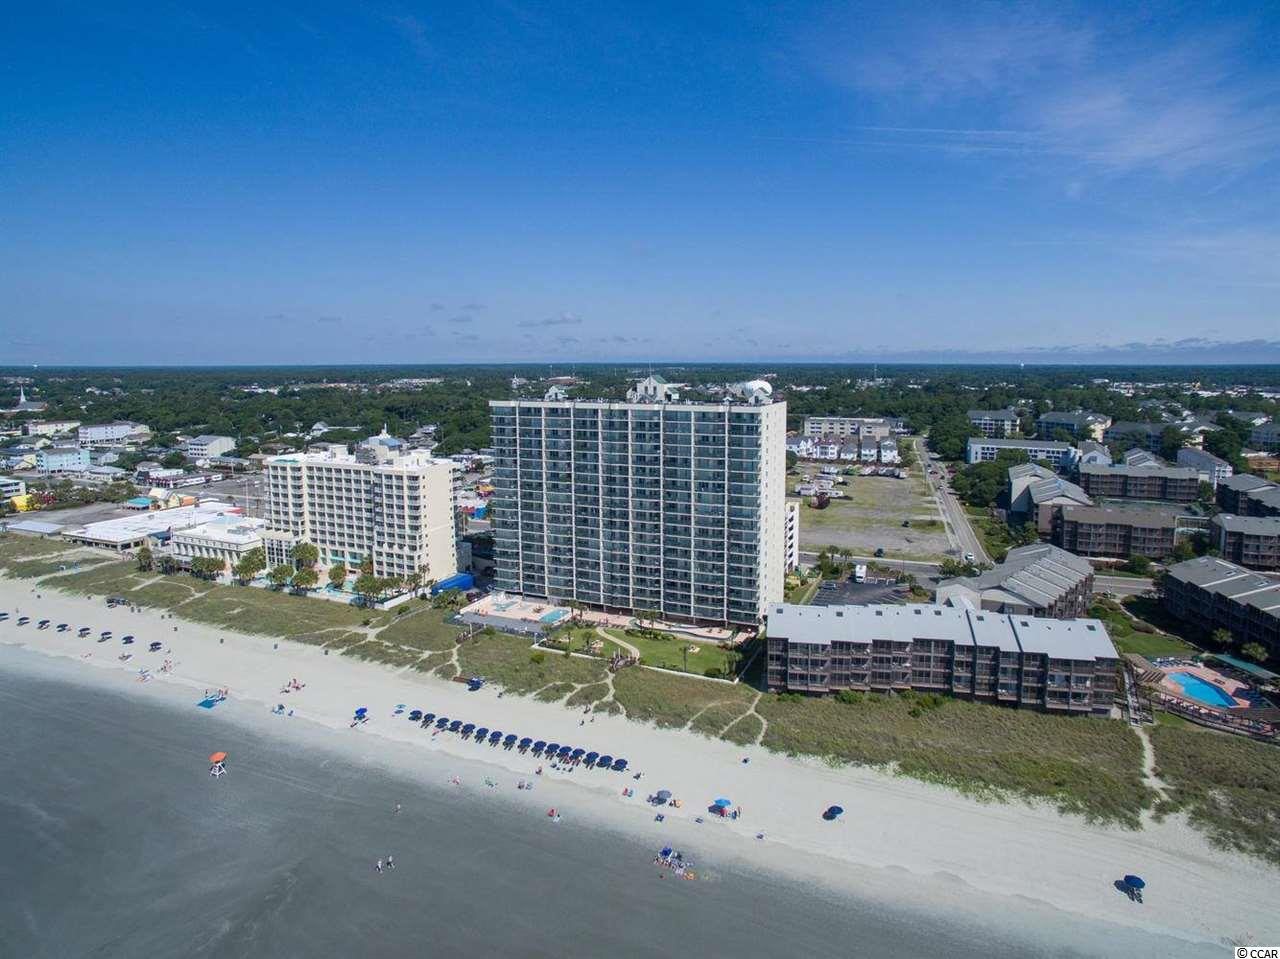 Spacious, oceanfront, 2 bdrm, 2 bath condo in popular Drake building. Spectacular amenities include outdoor pool, heated under-building enclosed pool, lazy river, whirlpool spa, baby pool, exercise room, sundeck, picnic/grill area, on-site 6 level parking garage, & large handicap accessible walkway to beach. Drive to 2nd floor & unload your car without using elevators or stairs & without going thru lobby. An open air staircase can be used to walk to the beach or to walk downtown for those who prefer not to use an elevator or to walk thru a lobby. There is a defined path to beach for Ashworth owners with pets. Telephone service included in association fee. New upgraded digital system will include free long distance. Ashworth is located on 1 of the few blocks zoned for condos between the low density single family zoning of Tilghman Estates & Main Street with its shag clubs, shops, restaurants, pavilion, & rides. Square footage, features, amenities, etc. not guaranteed. Buyer responsible for verification.